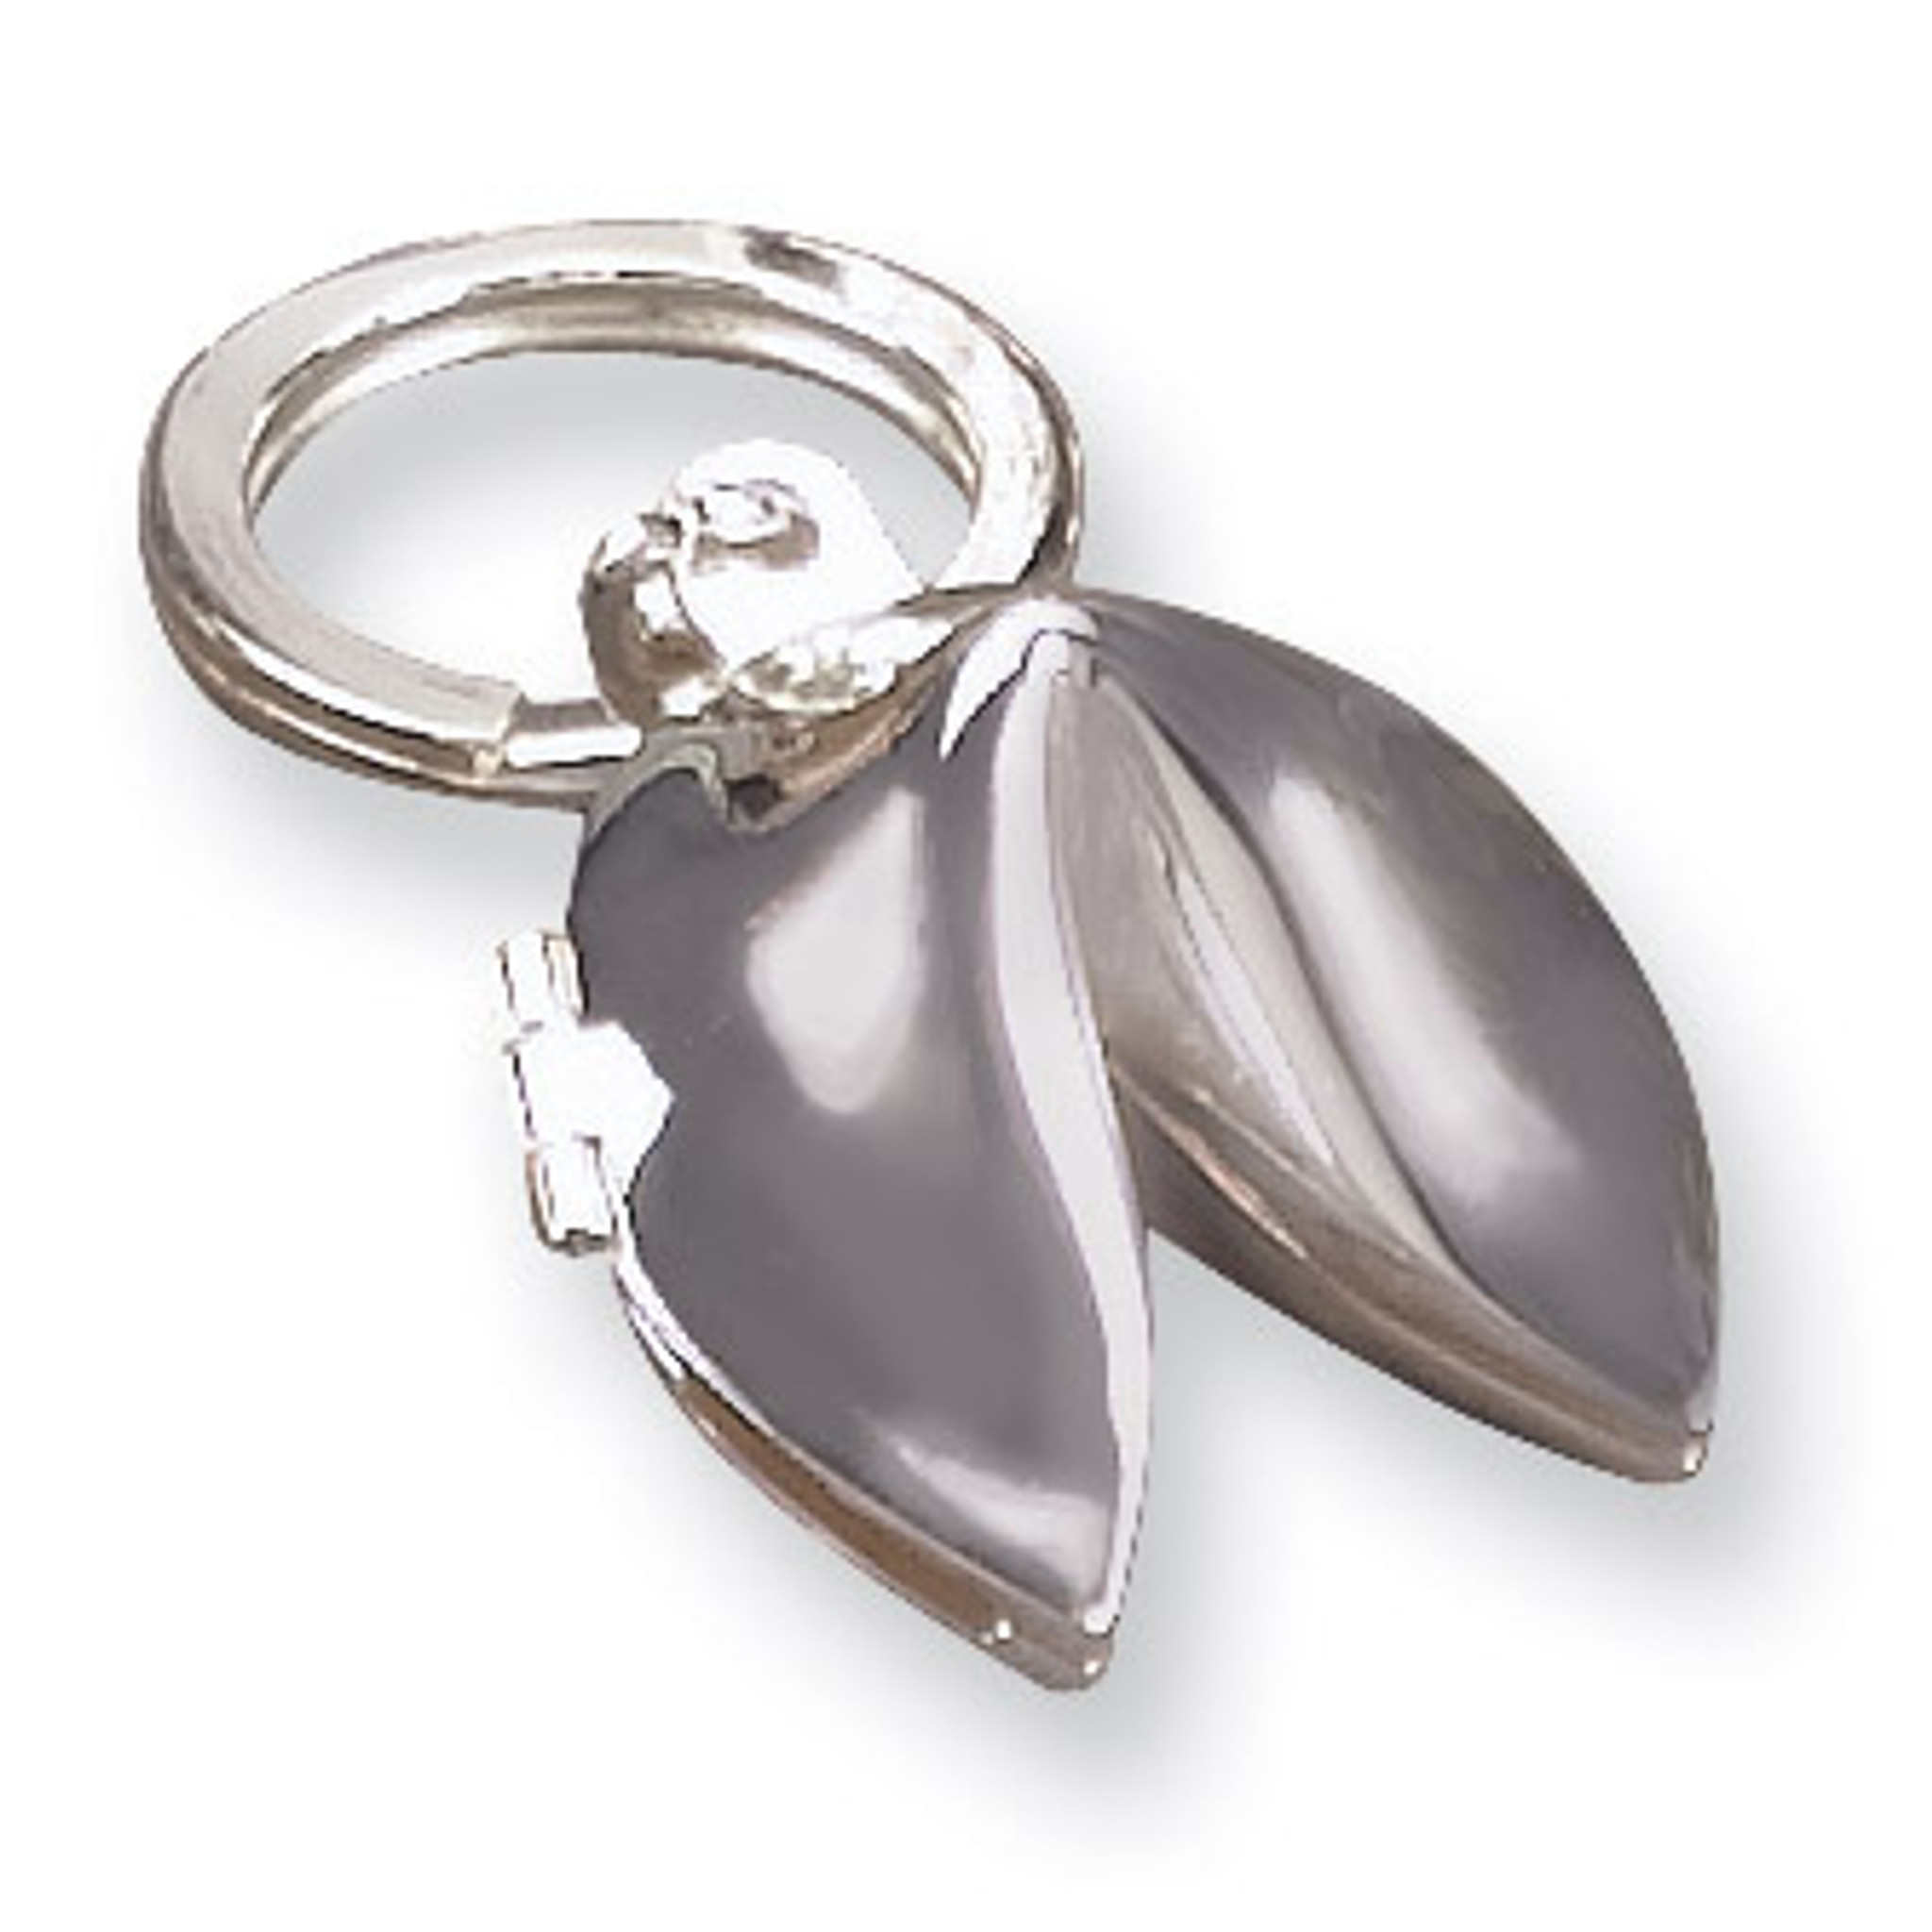 Silver Tone Metal Fortune Cookie Key Chain Ring